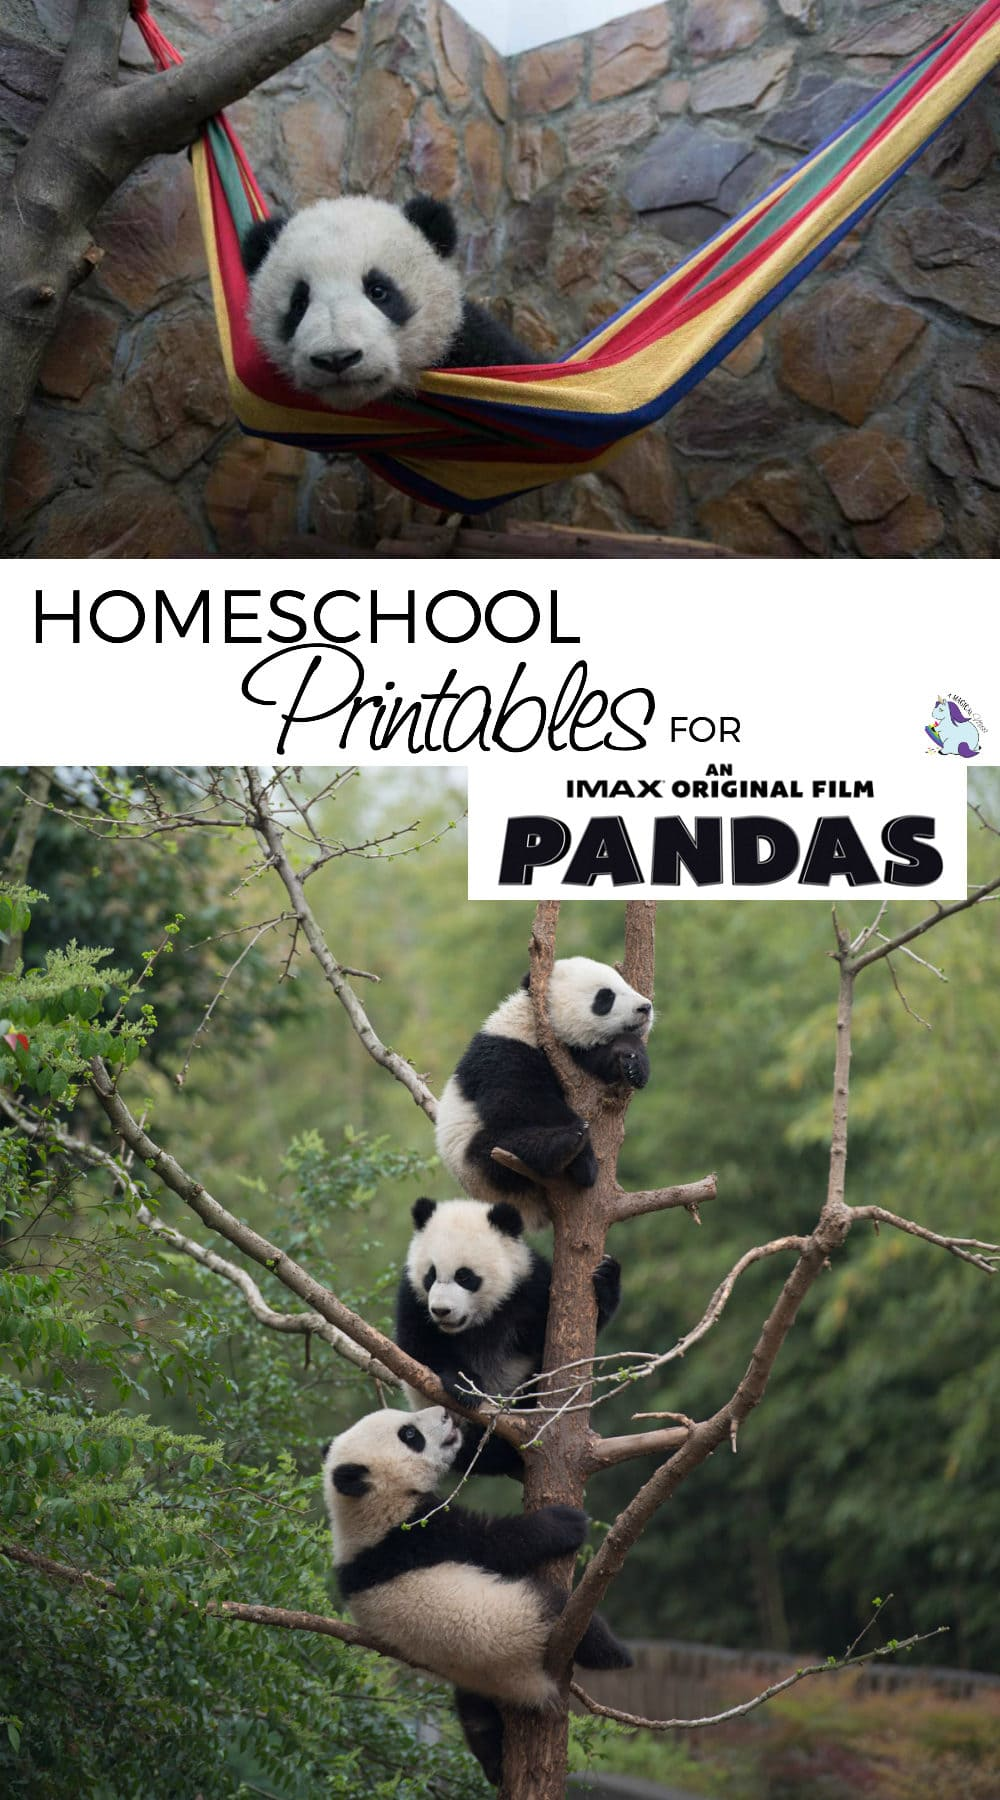 Homeschool printables to go with the new PANDAS movie